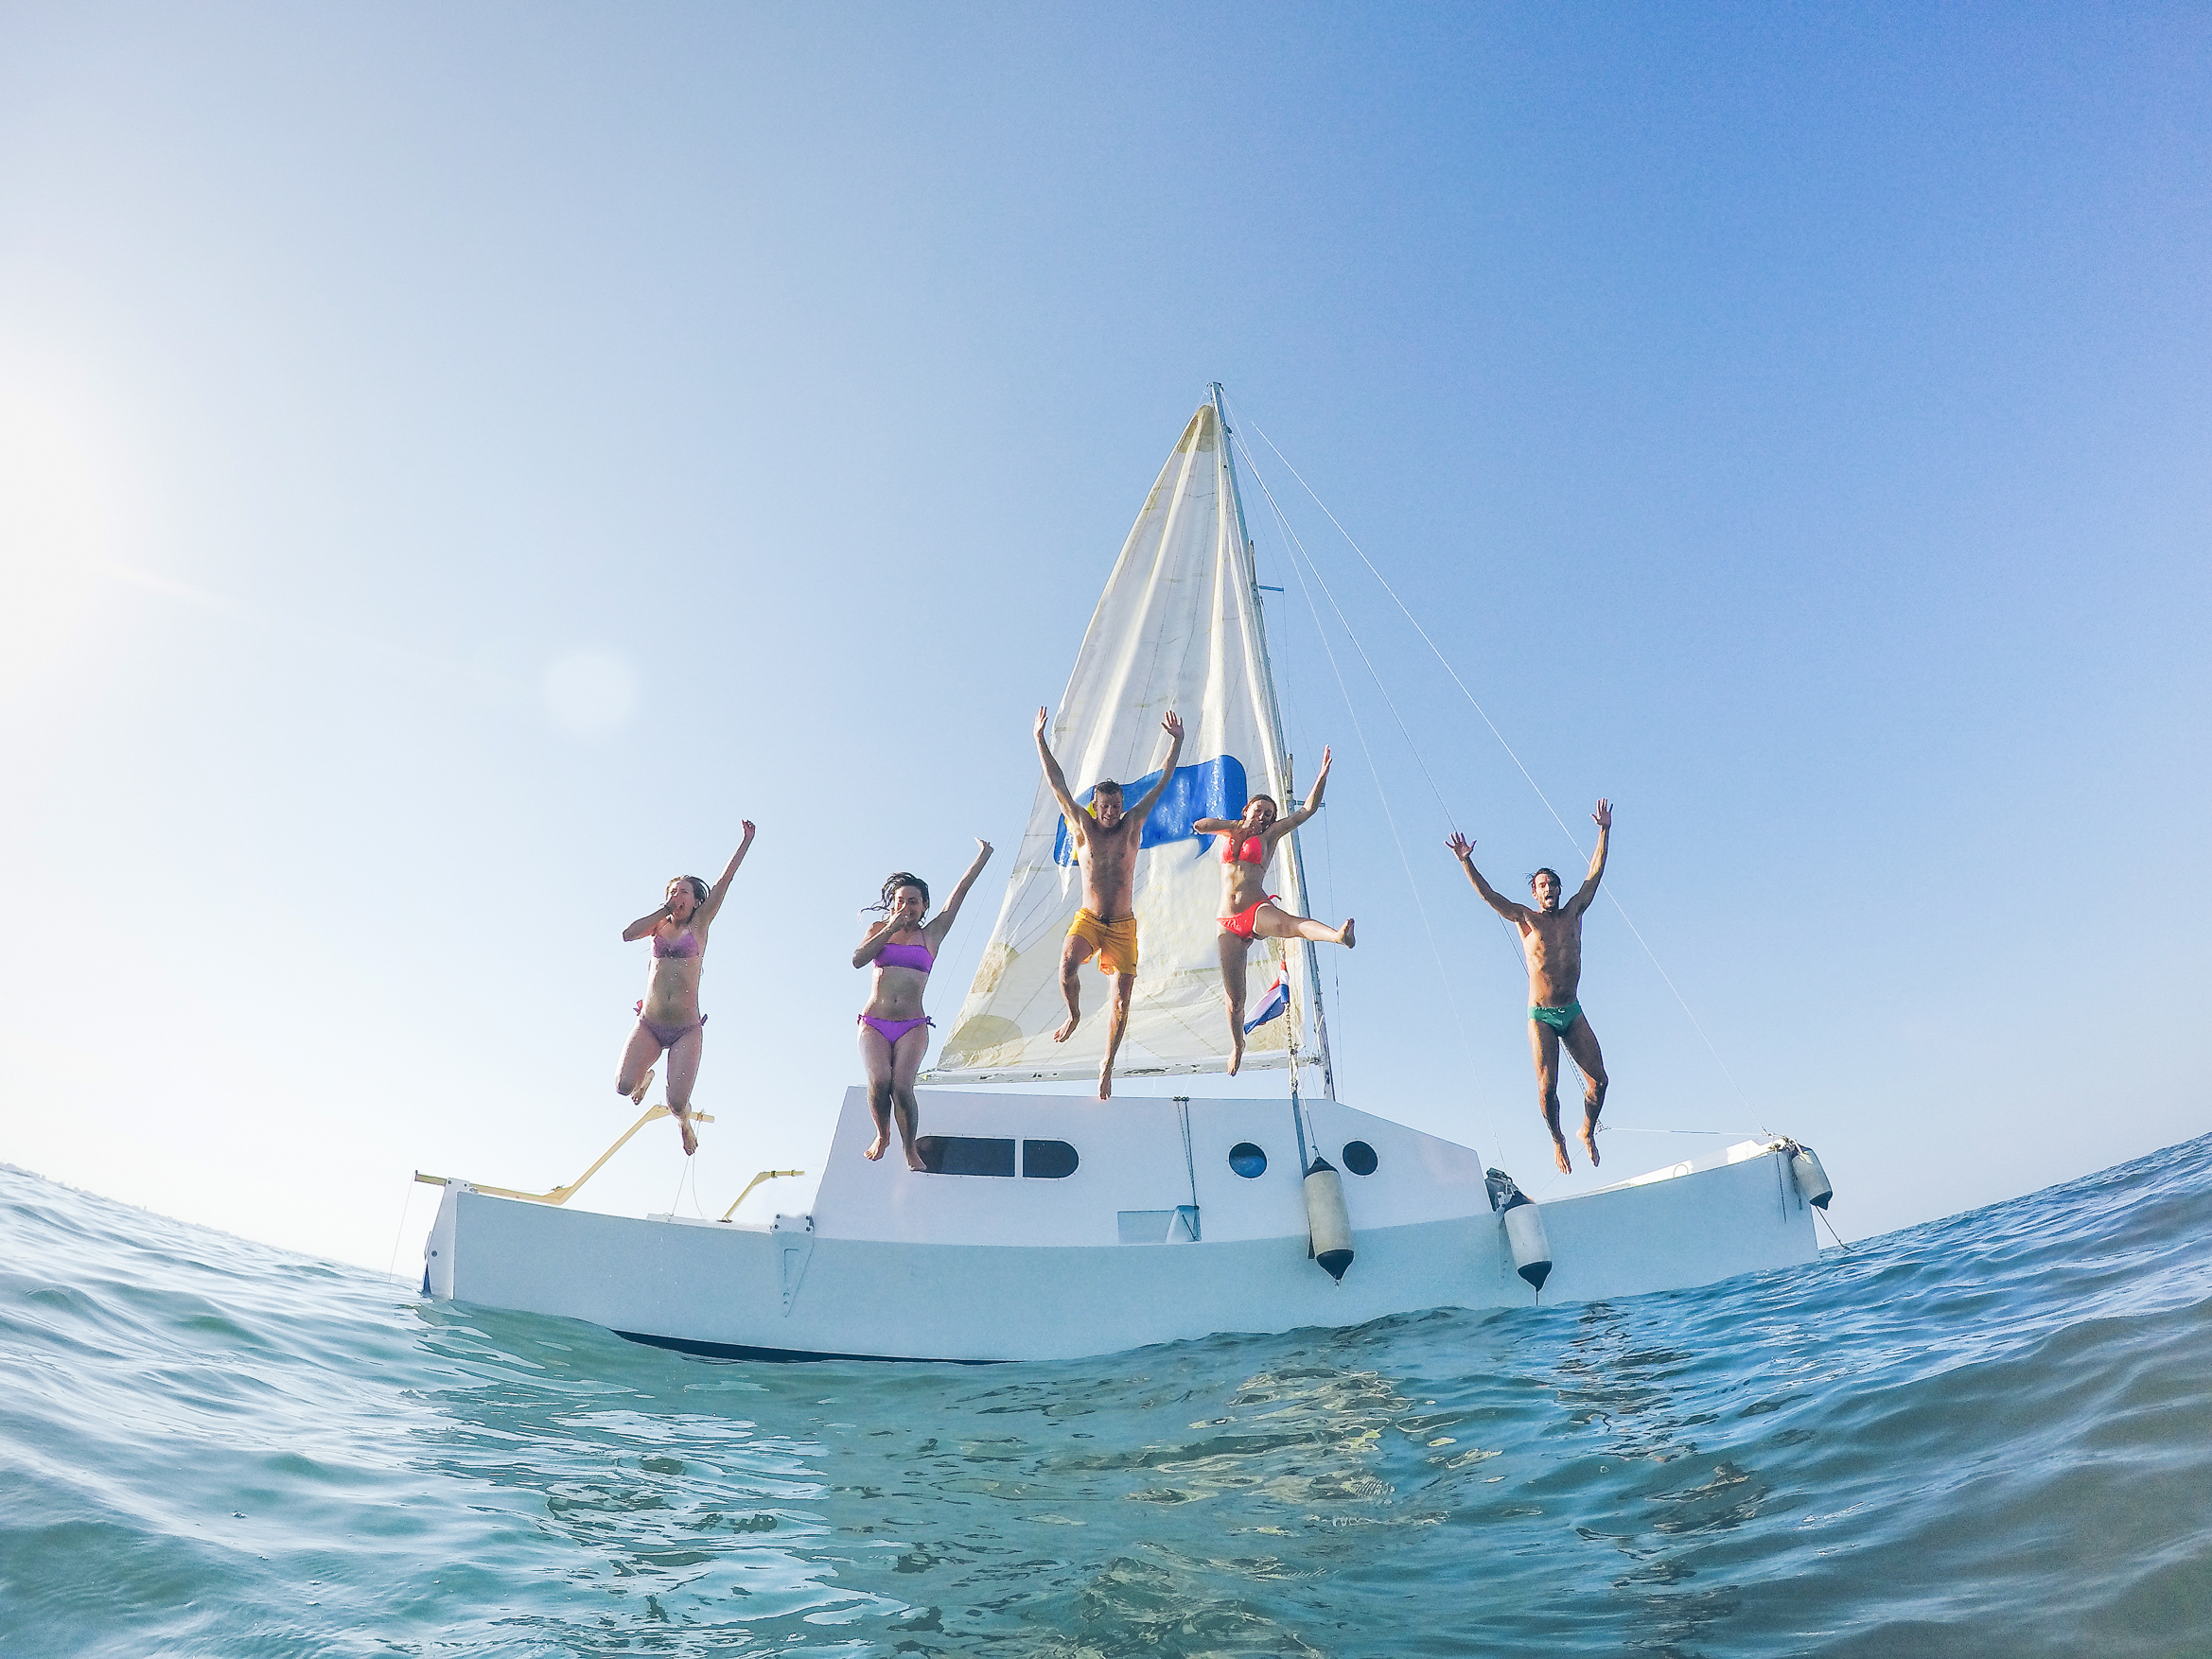 Best Boat Rentals in Miami Beach